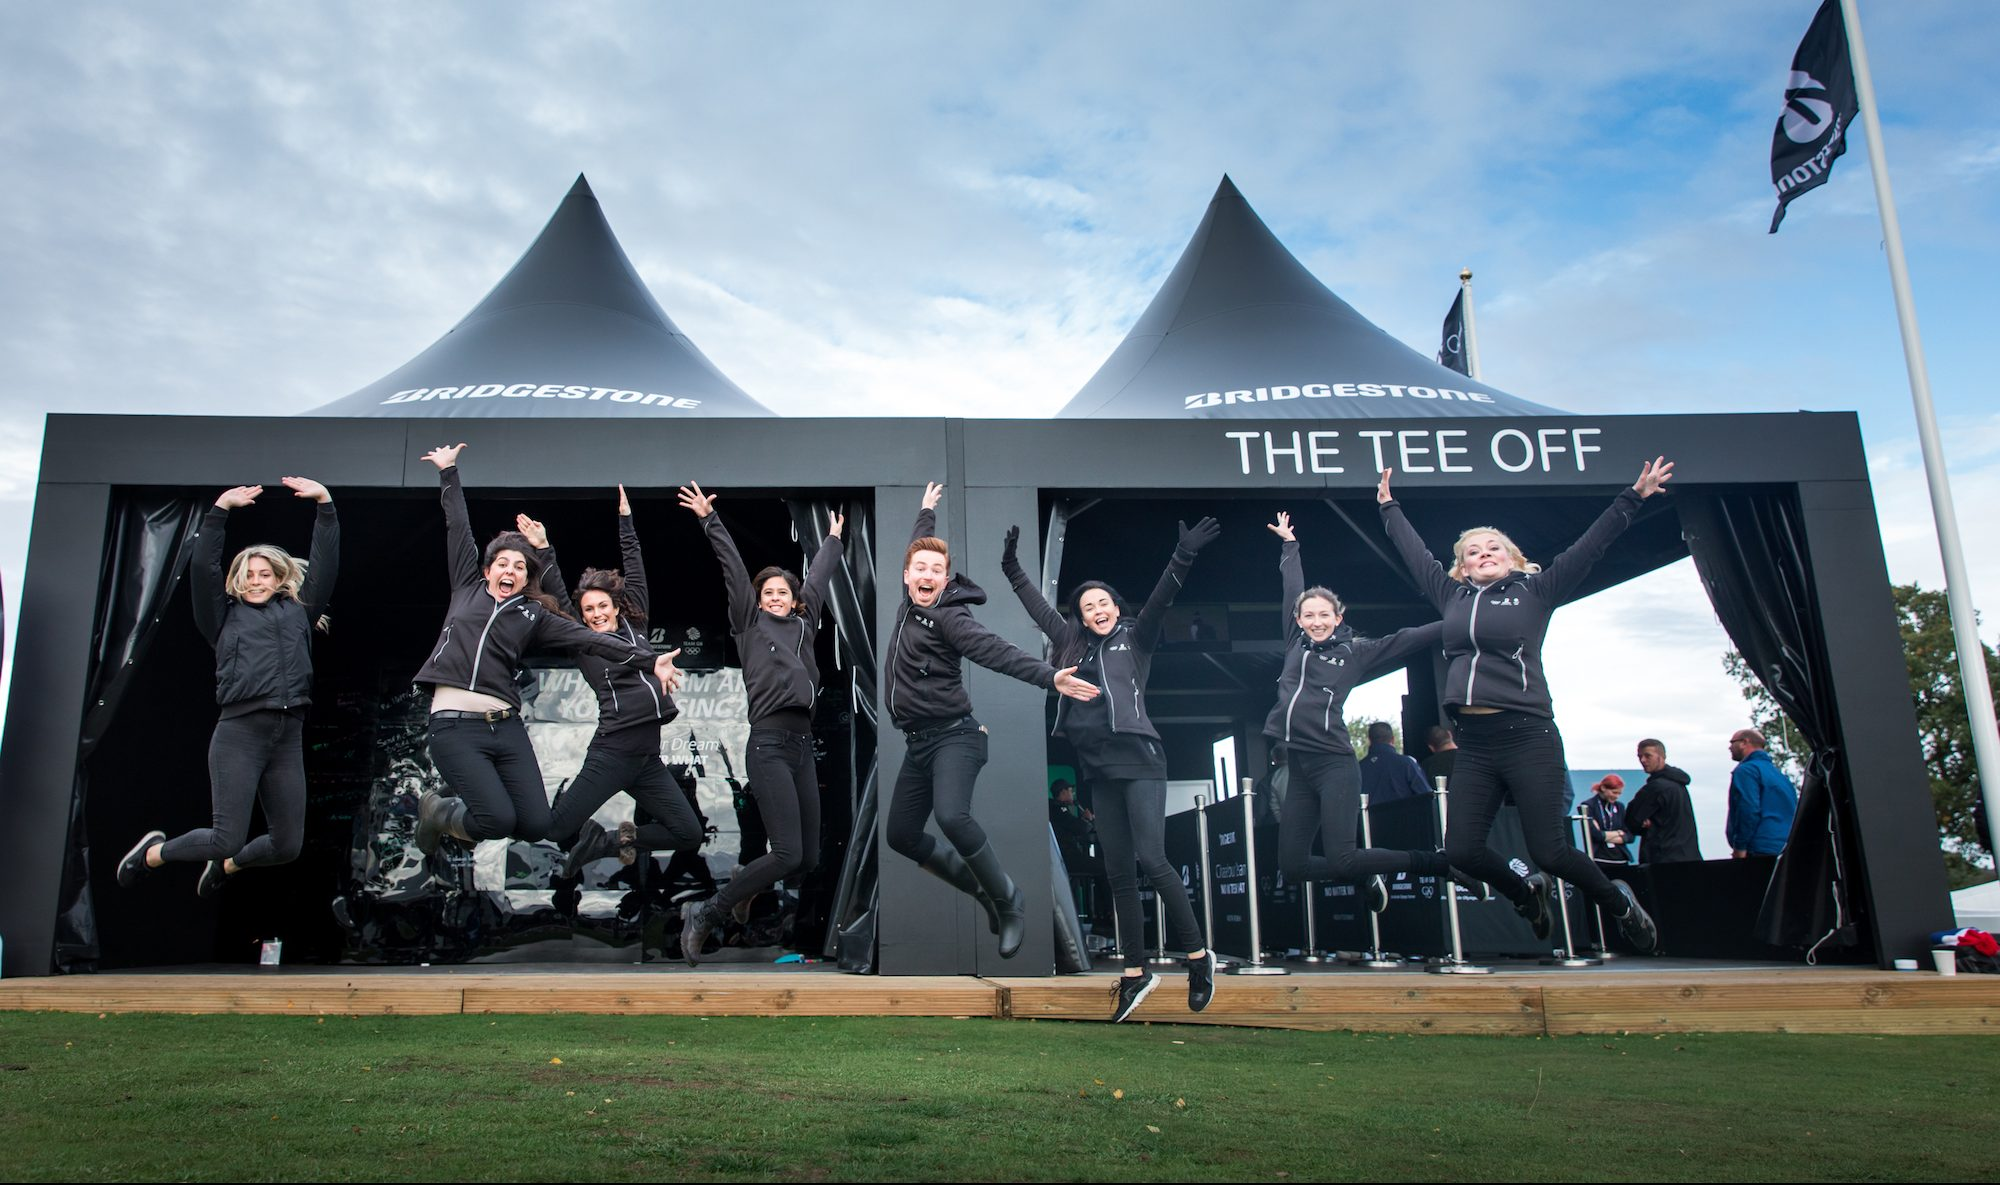 Bridgestone event team jumping with joy